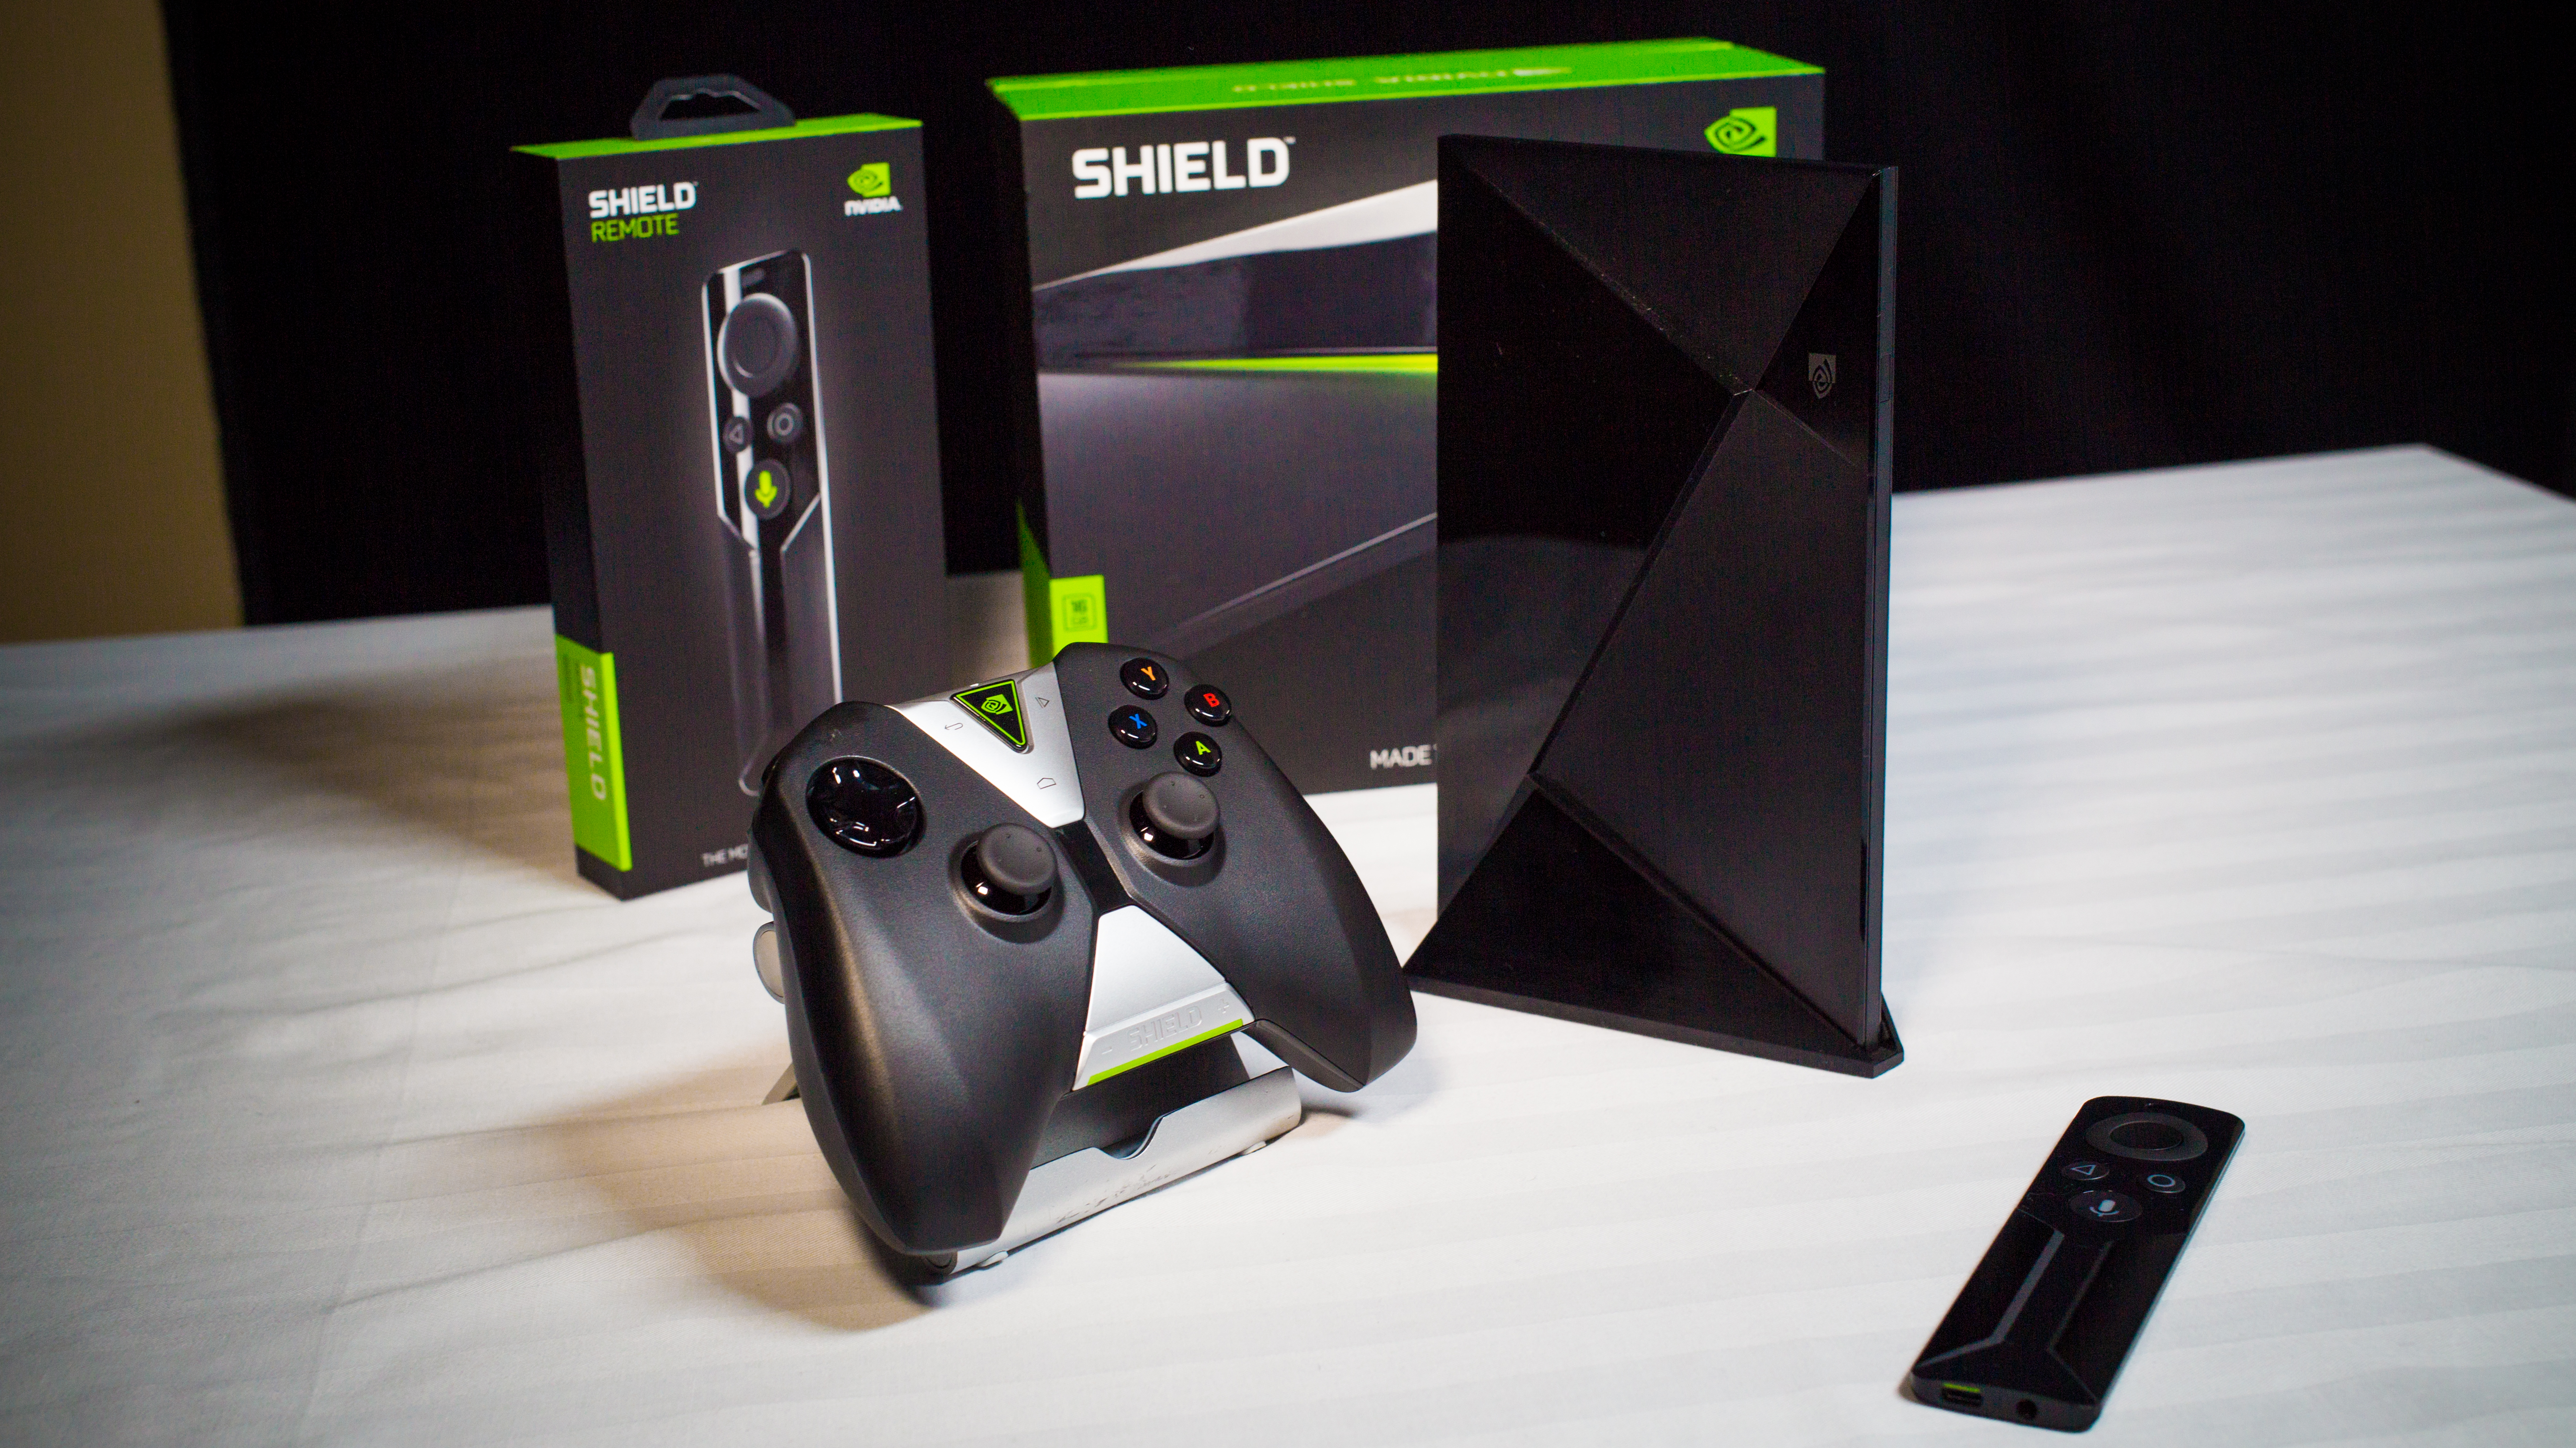 shield-and-shield-controller.jpg